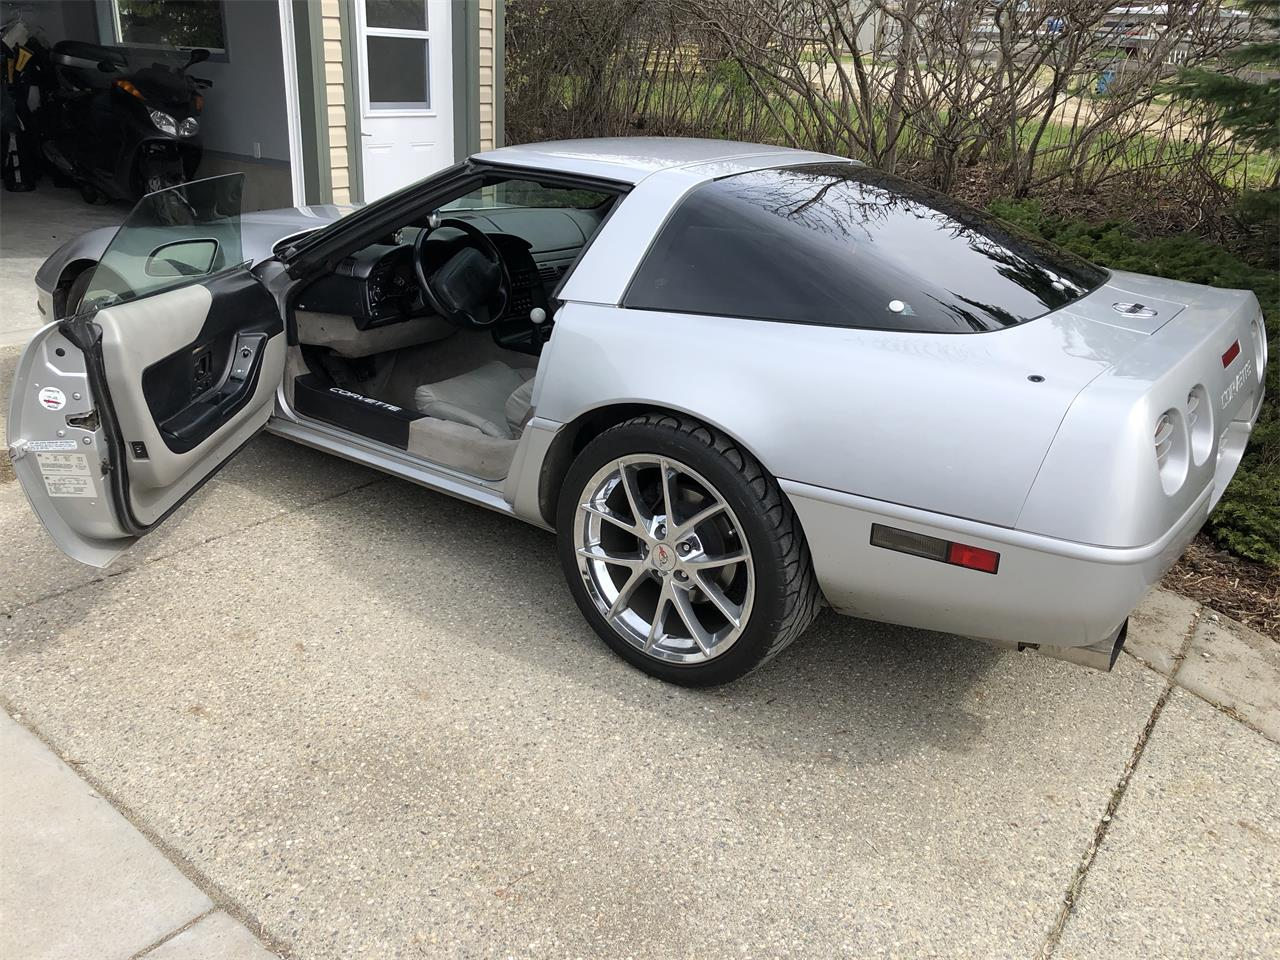 Large Picture of 1996 Chevrolet Corvette - $19,750.00 Offered by a Private Seller - QDY2